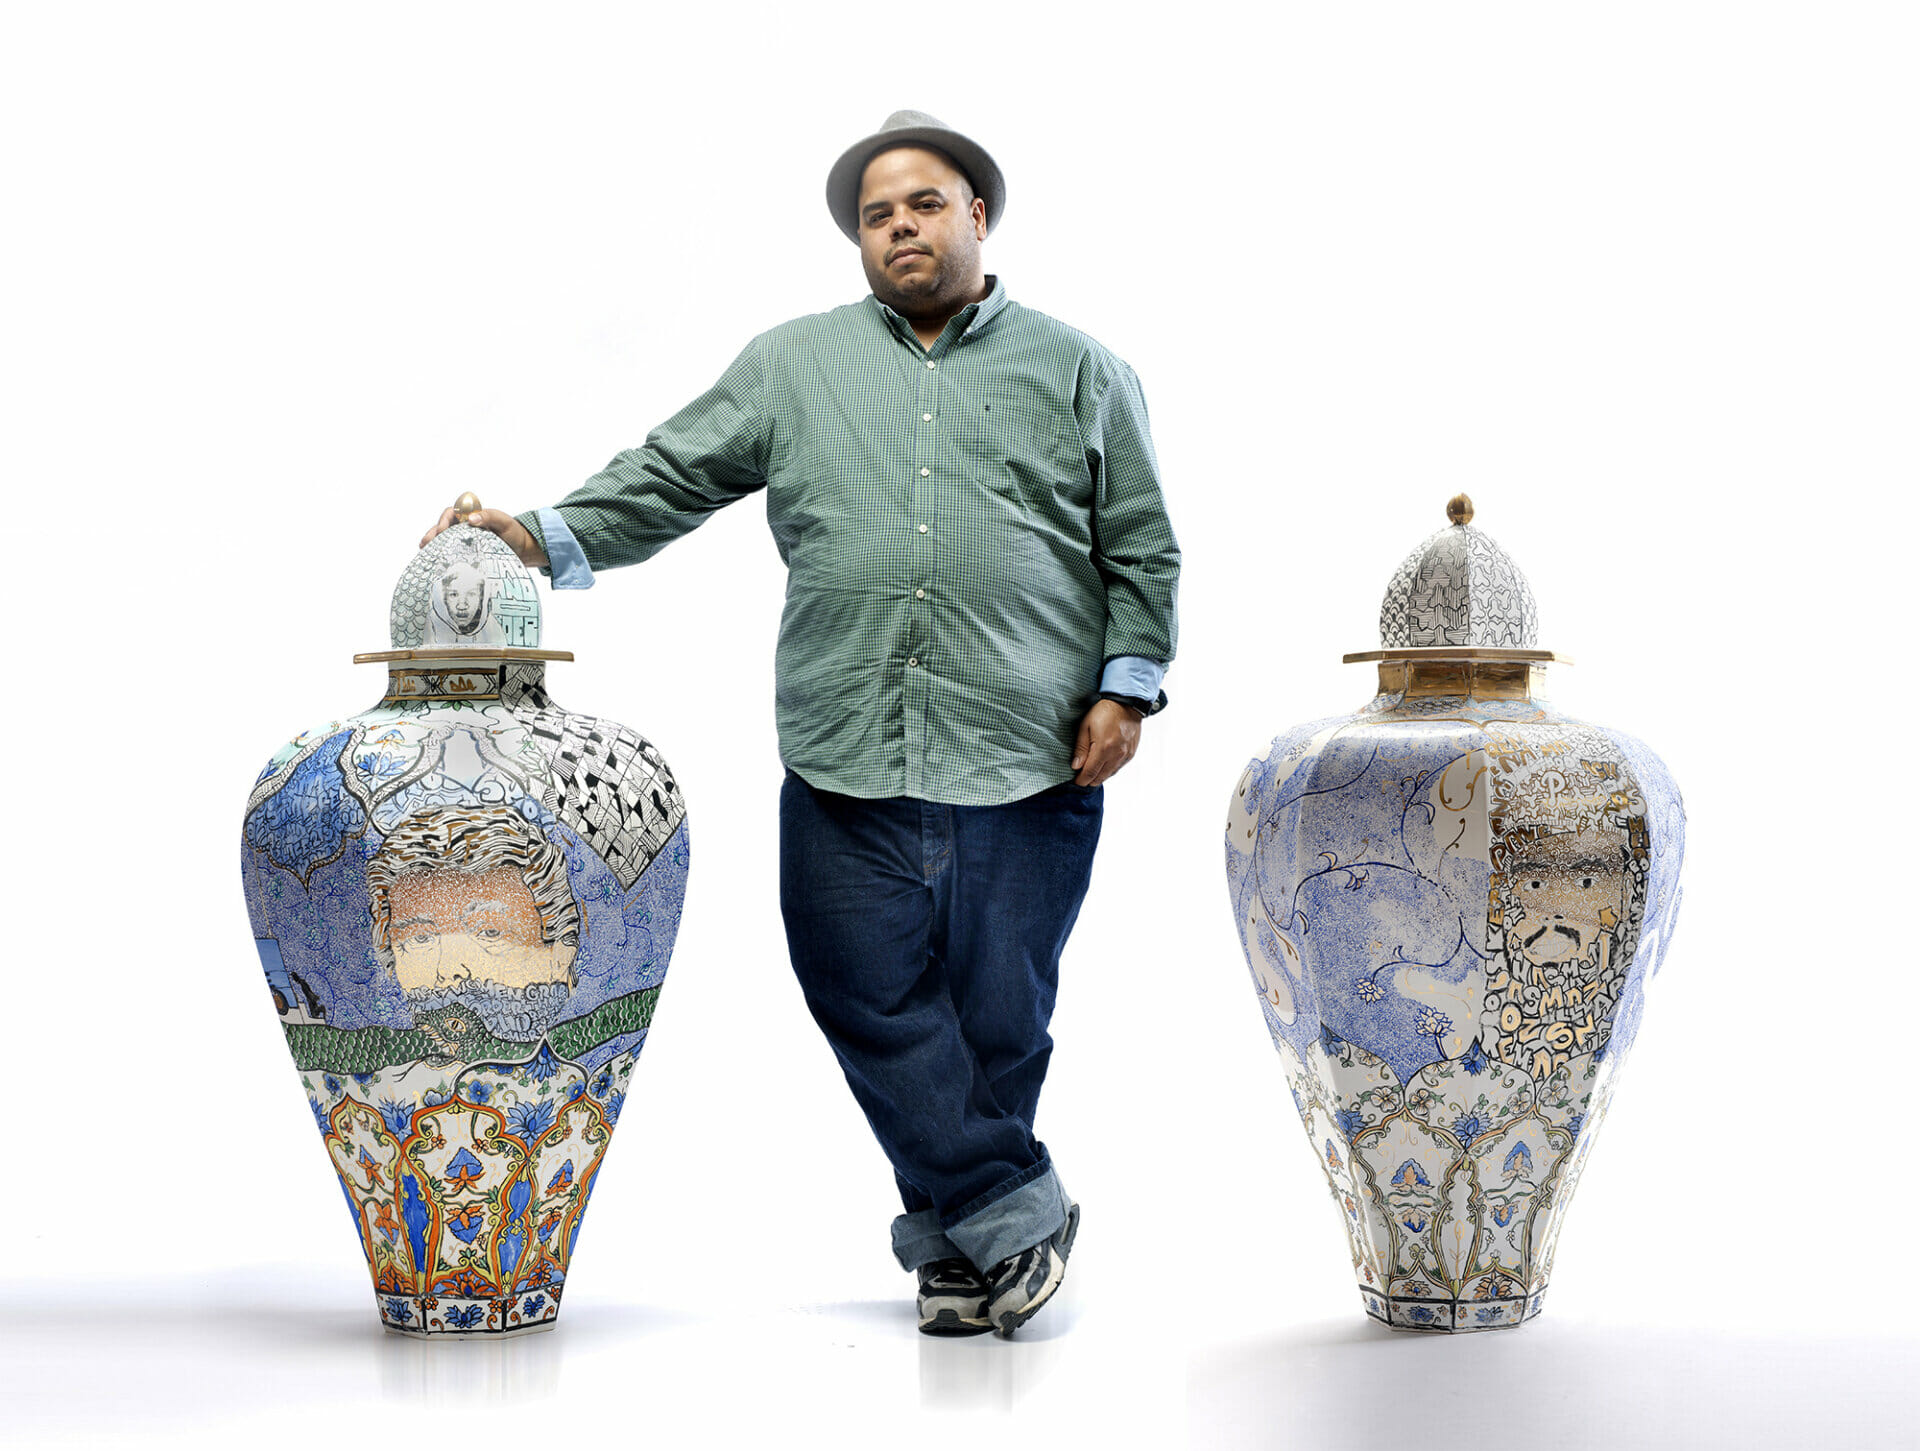 Man stand between two very large ceramic urns